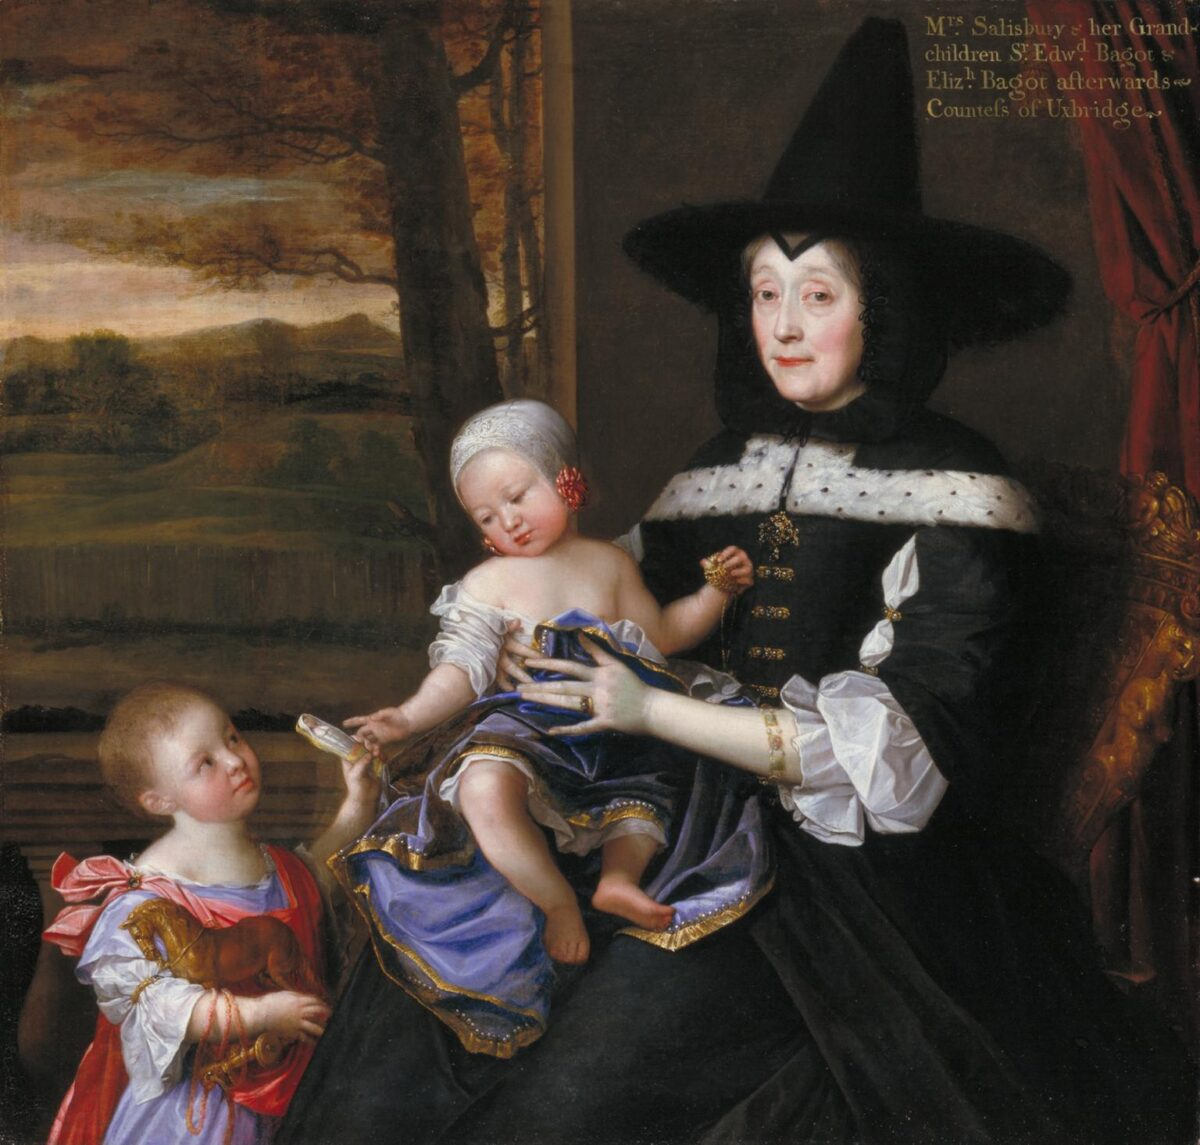 Portrait of Mrs Salesbury with her Grandchildren Edward and Elizabeth Bagot 1675-6 John Michael Wright 1617-1694 Presented by the Patrons of British Art through the Tate Gallery Foundation 1993 http://www.tate.org.uk/art/work/T06750